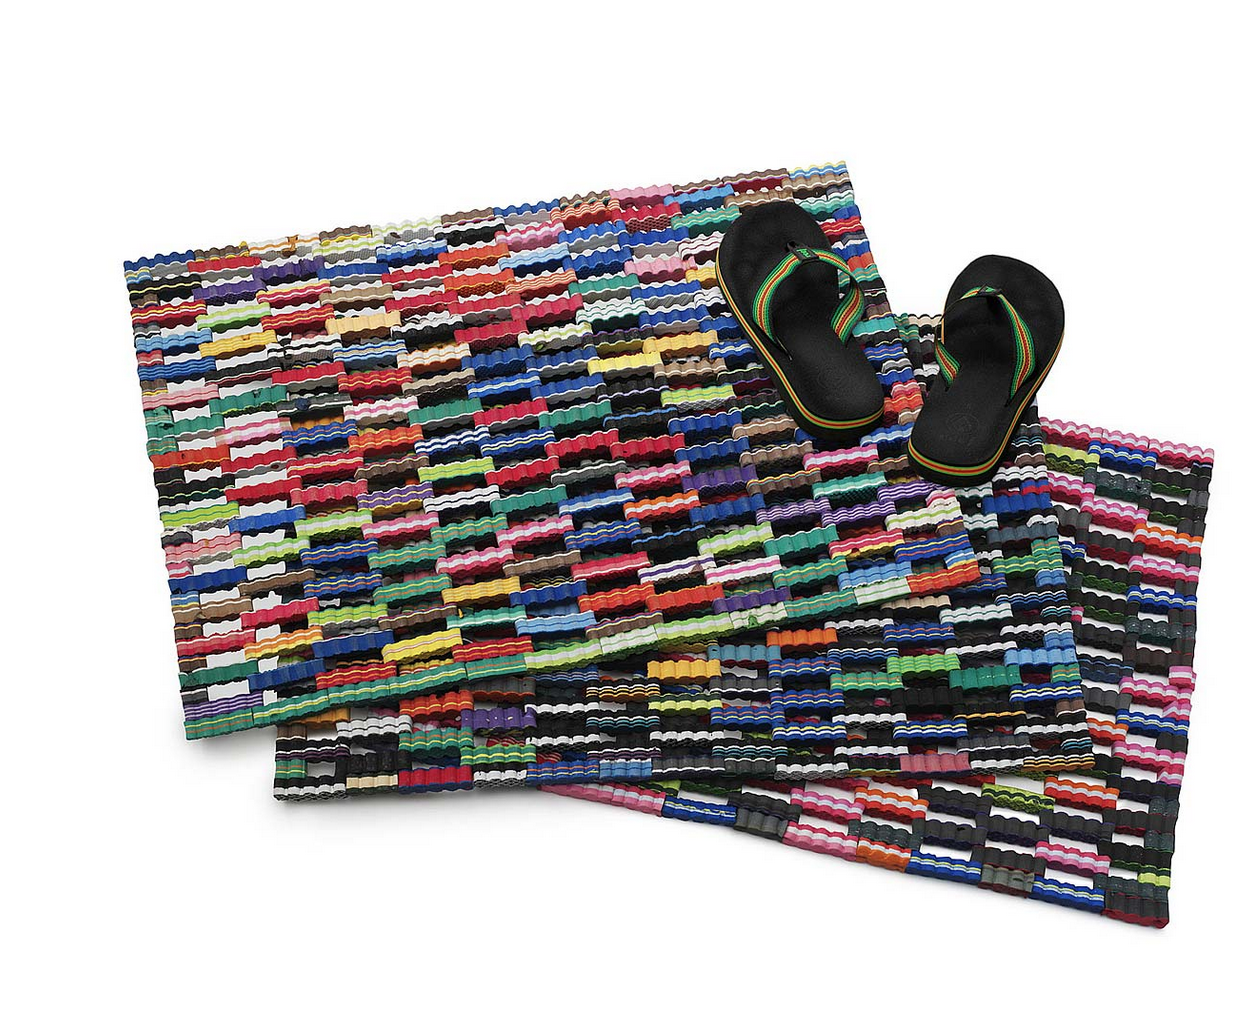 Made in the Philippines, using scrap flip flop foam procured from sandal factories, making these dang pretty and environmentally kind, as well. Get 'em   here .